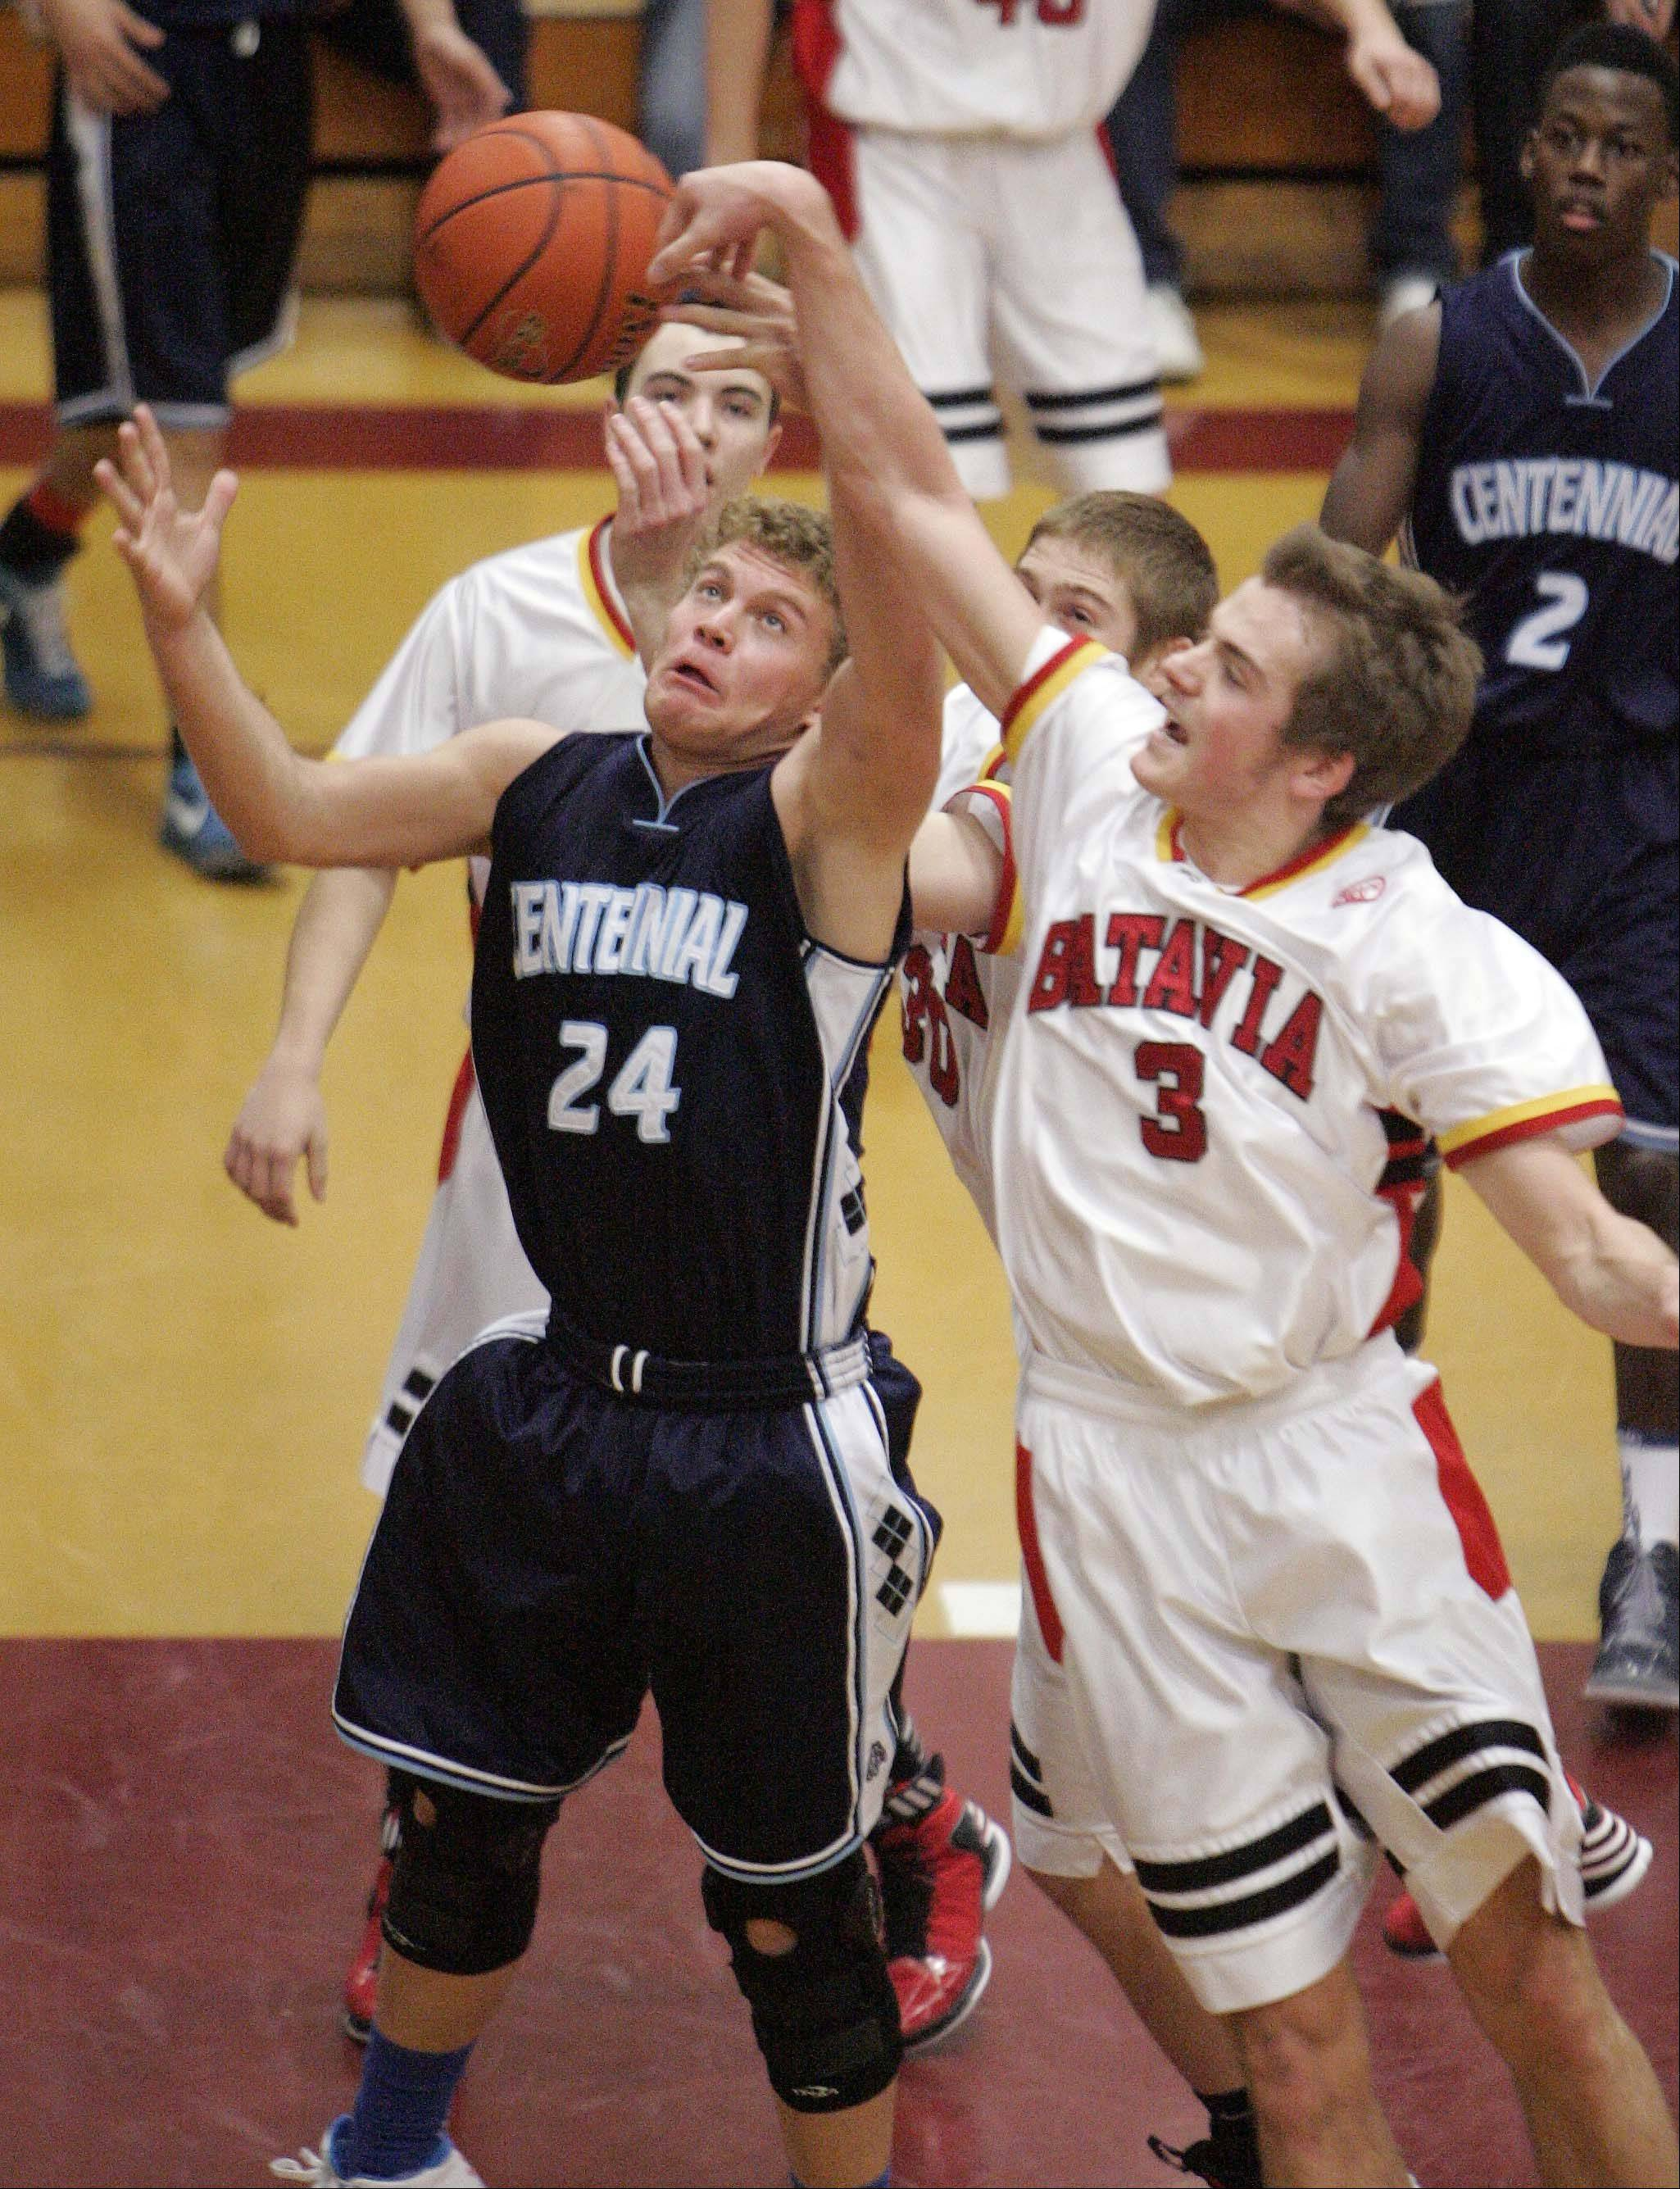 Batavia guard Jake Pollack (3) knocks a rebound from the hands of Las Vegas Centennial's Austin Turley, 24, during the third place basketball game of the 38th Annual Elgin Boys Holiday Basketball Tournament Saturday, December 29, 2012 in Elgin.